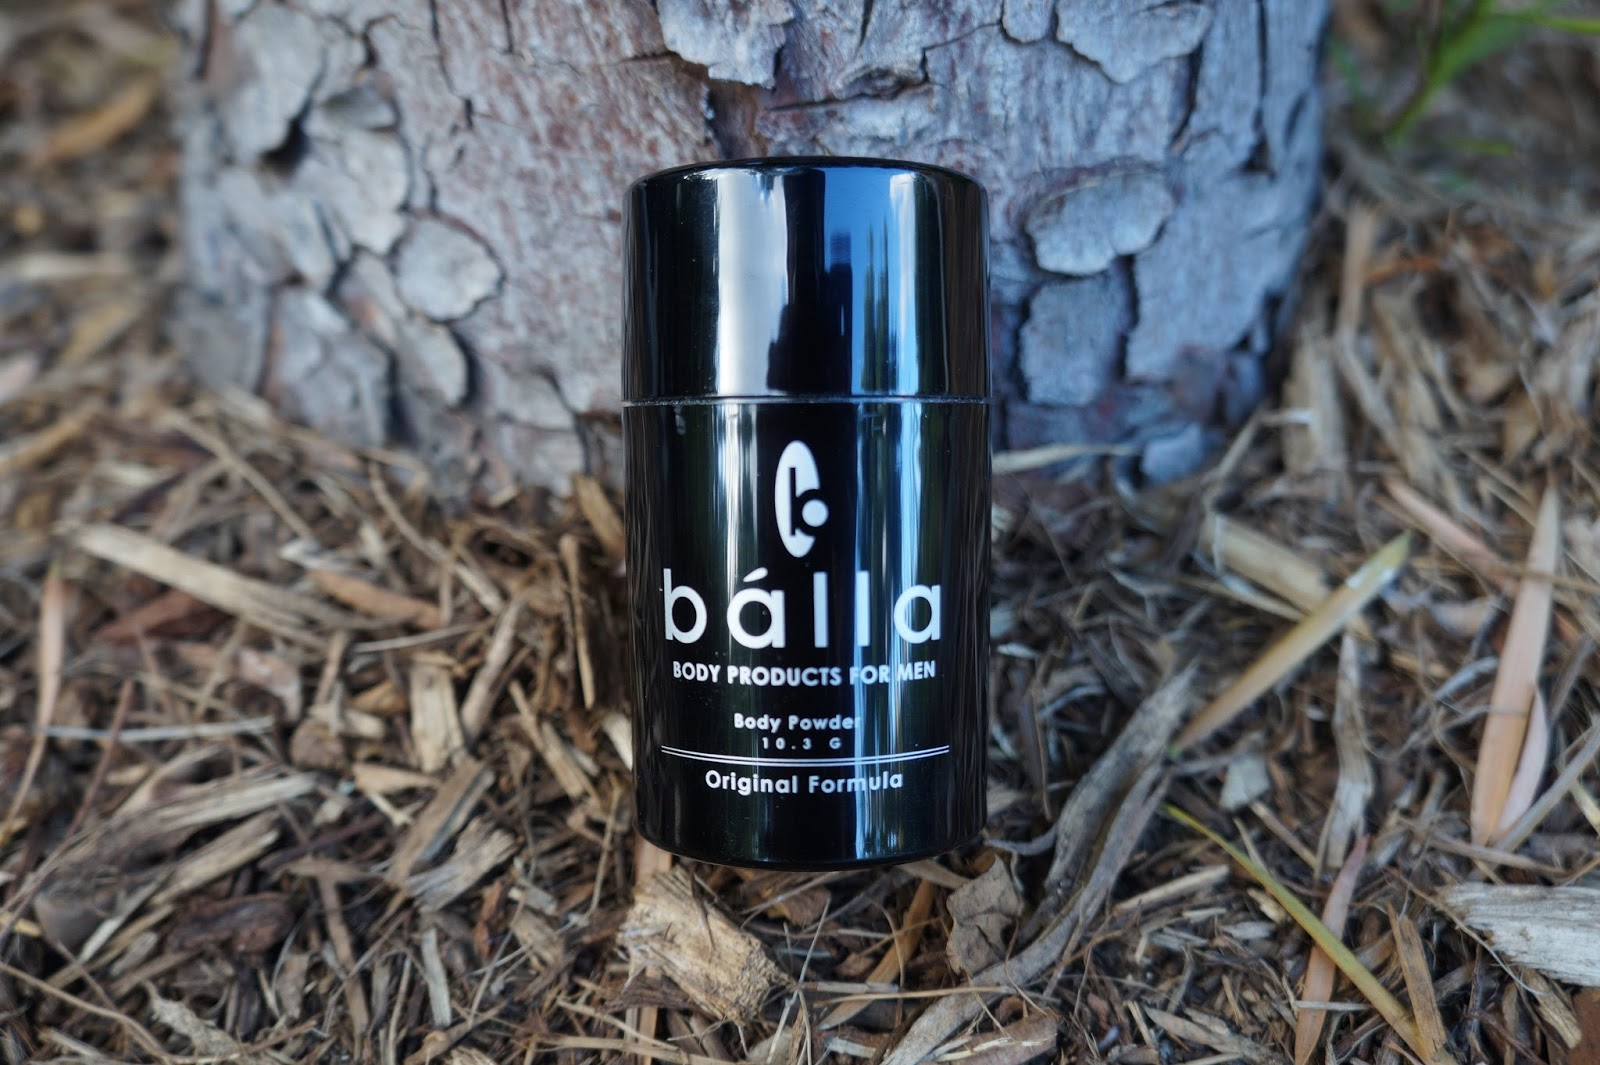 Balla for Men, Body Powder